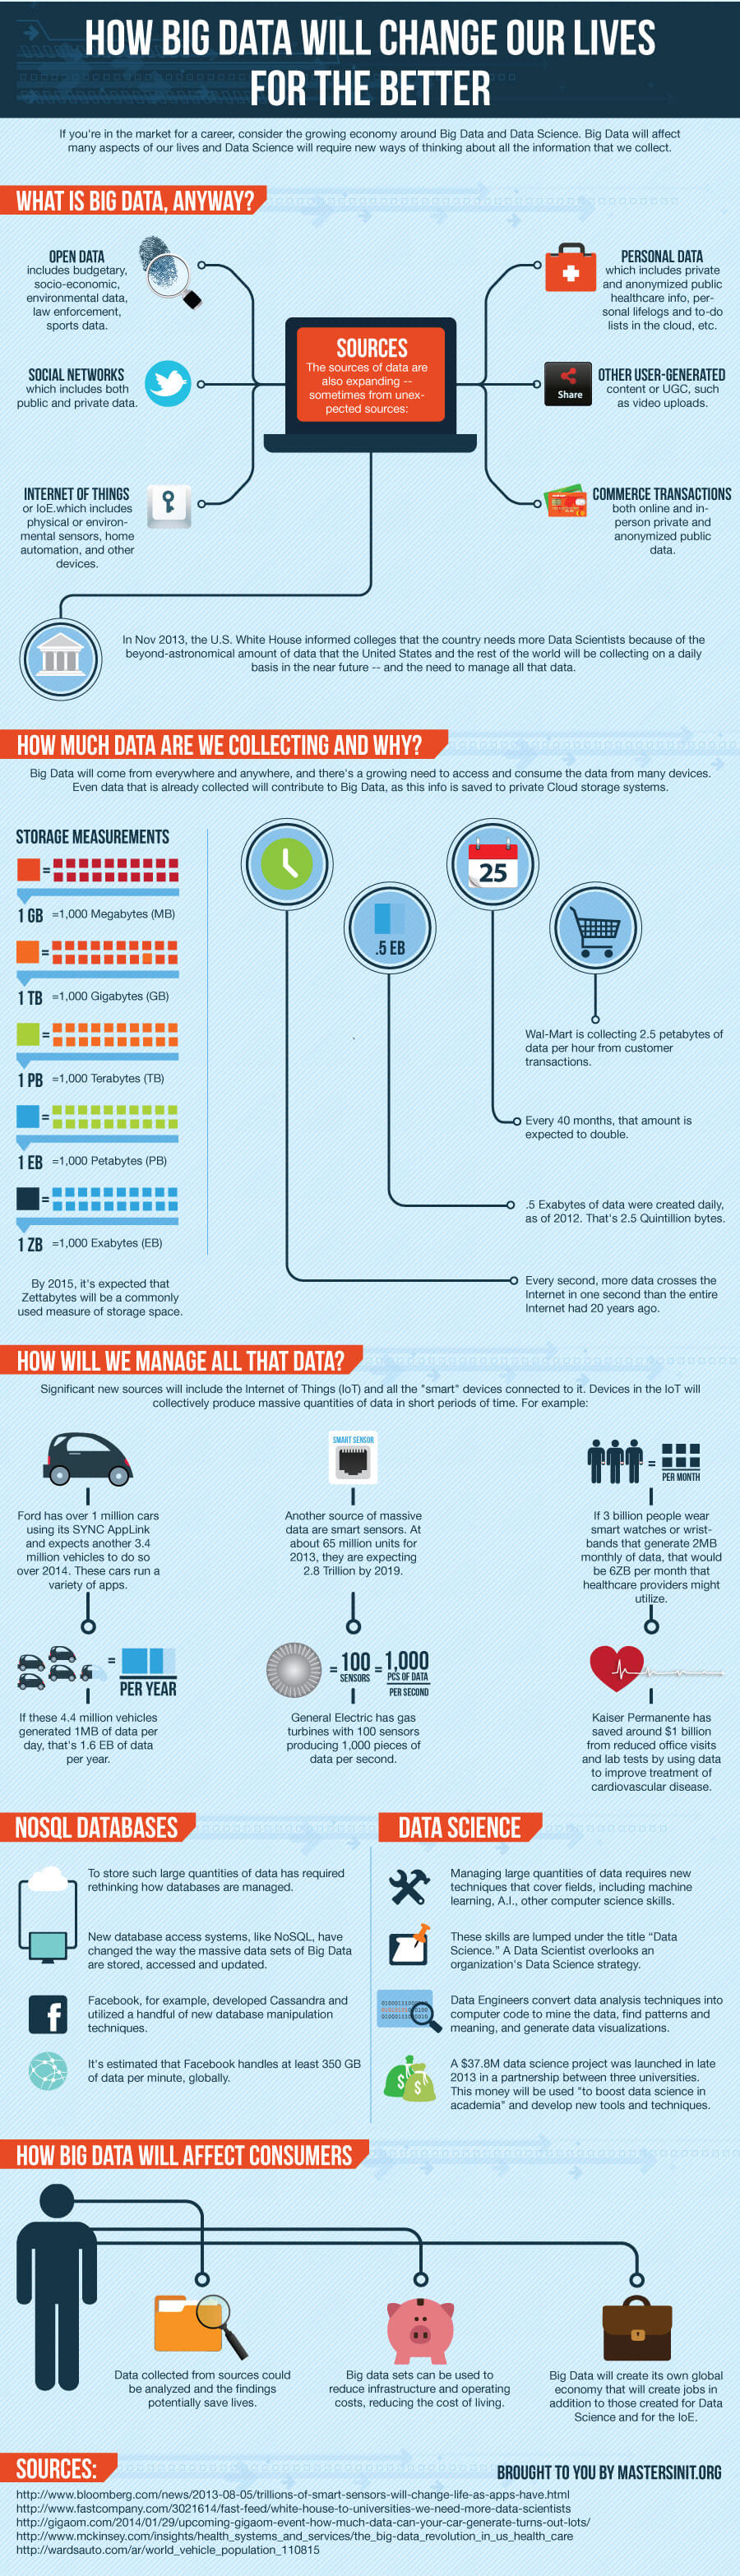 Infographic - How Big Data Will Change Our Lives For The Better